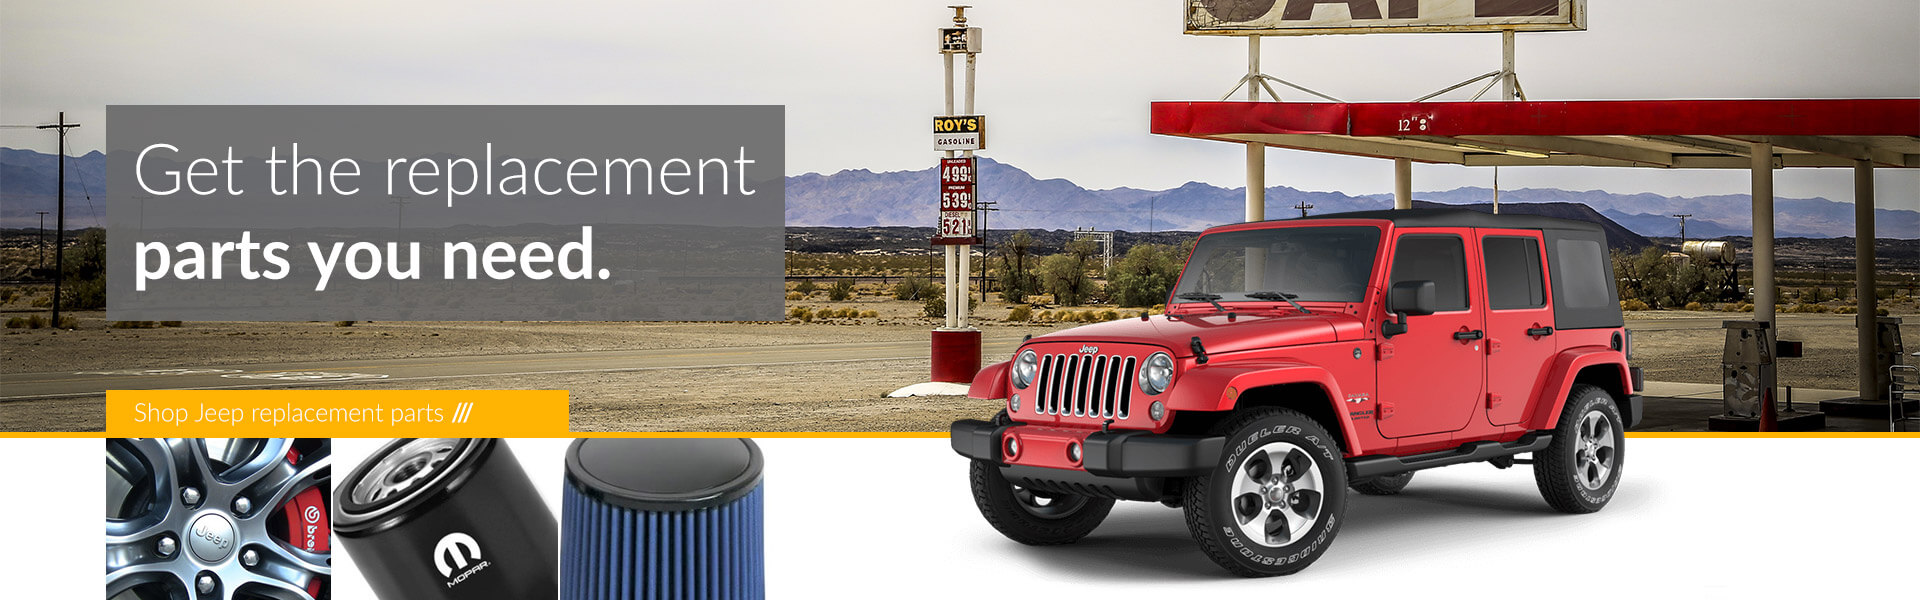 Jeep genuine replacement parts